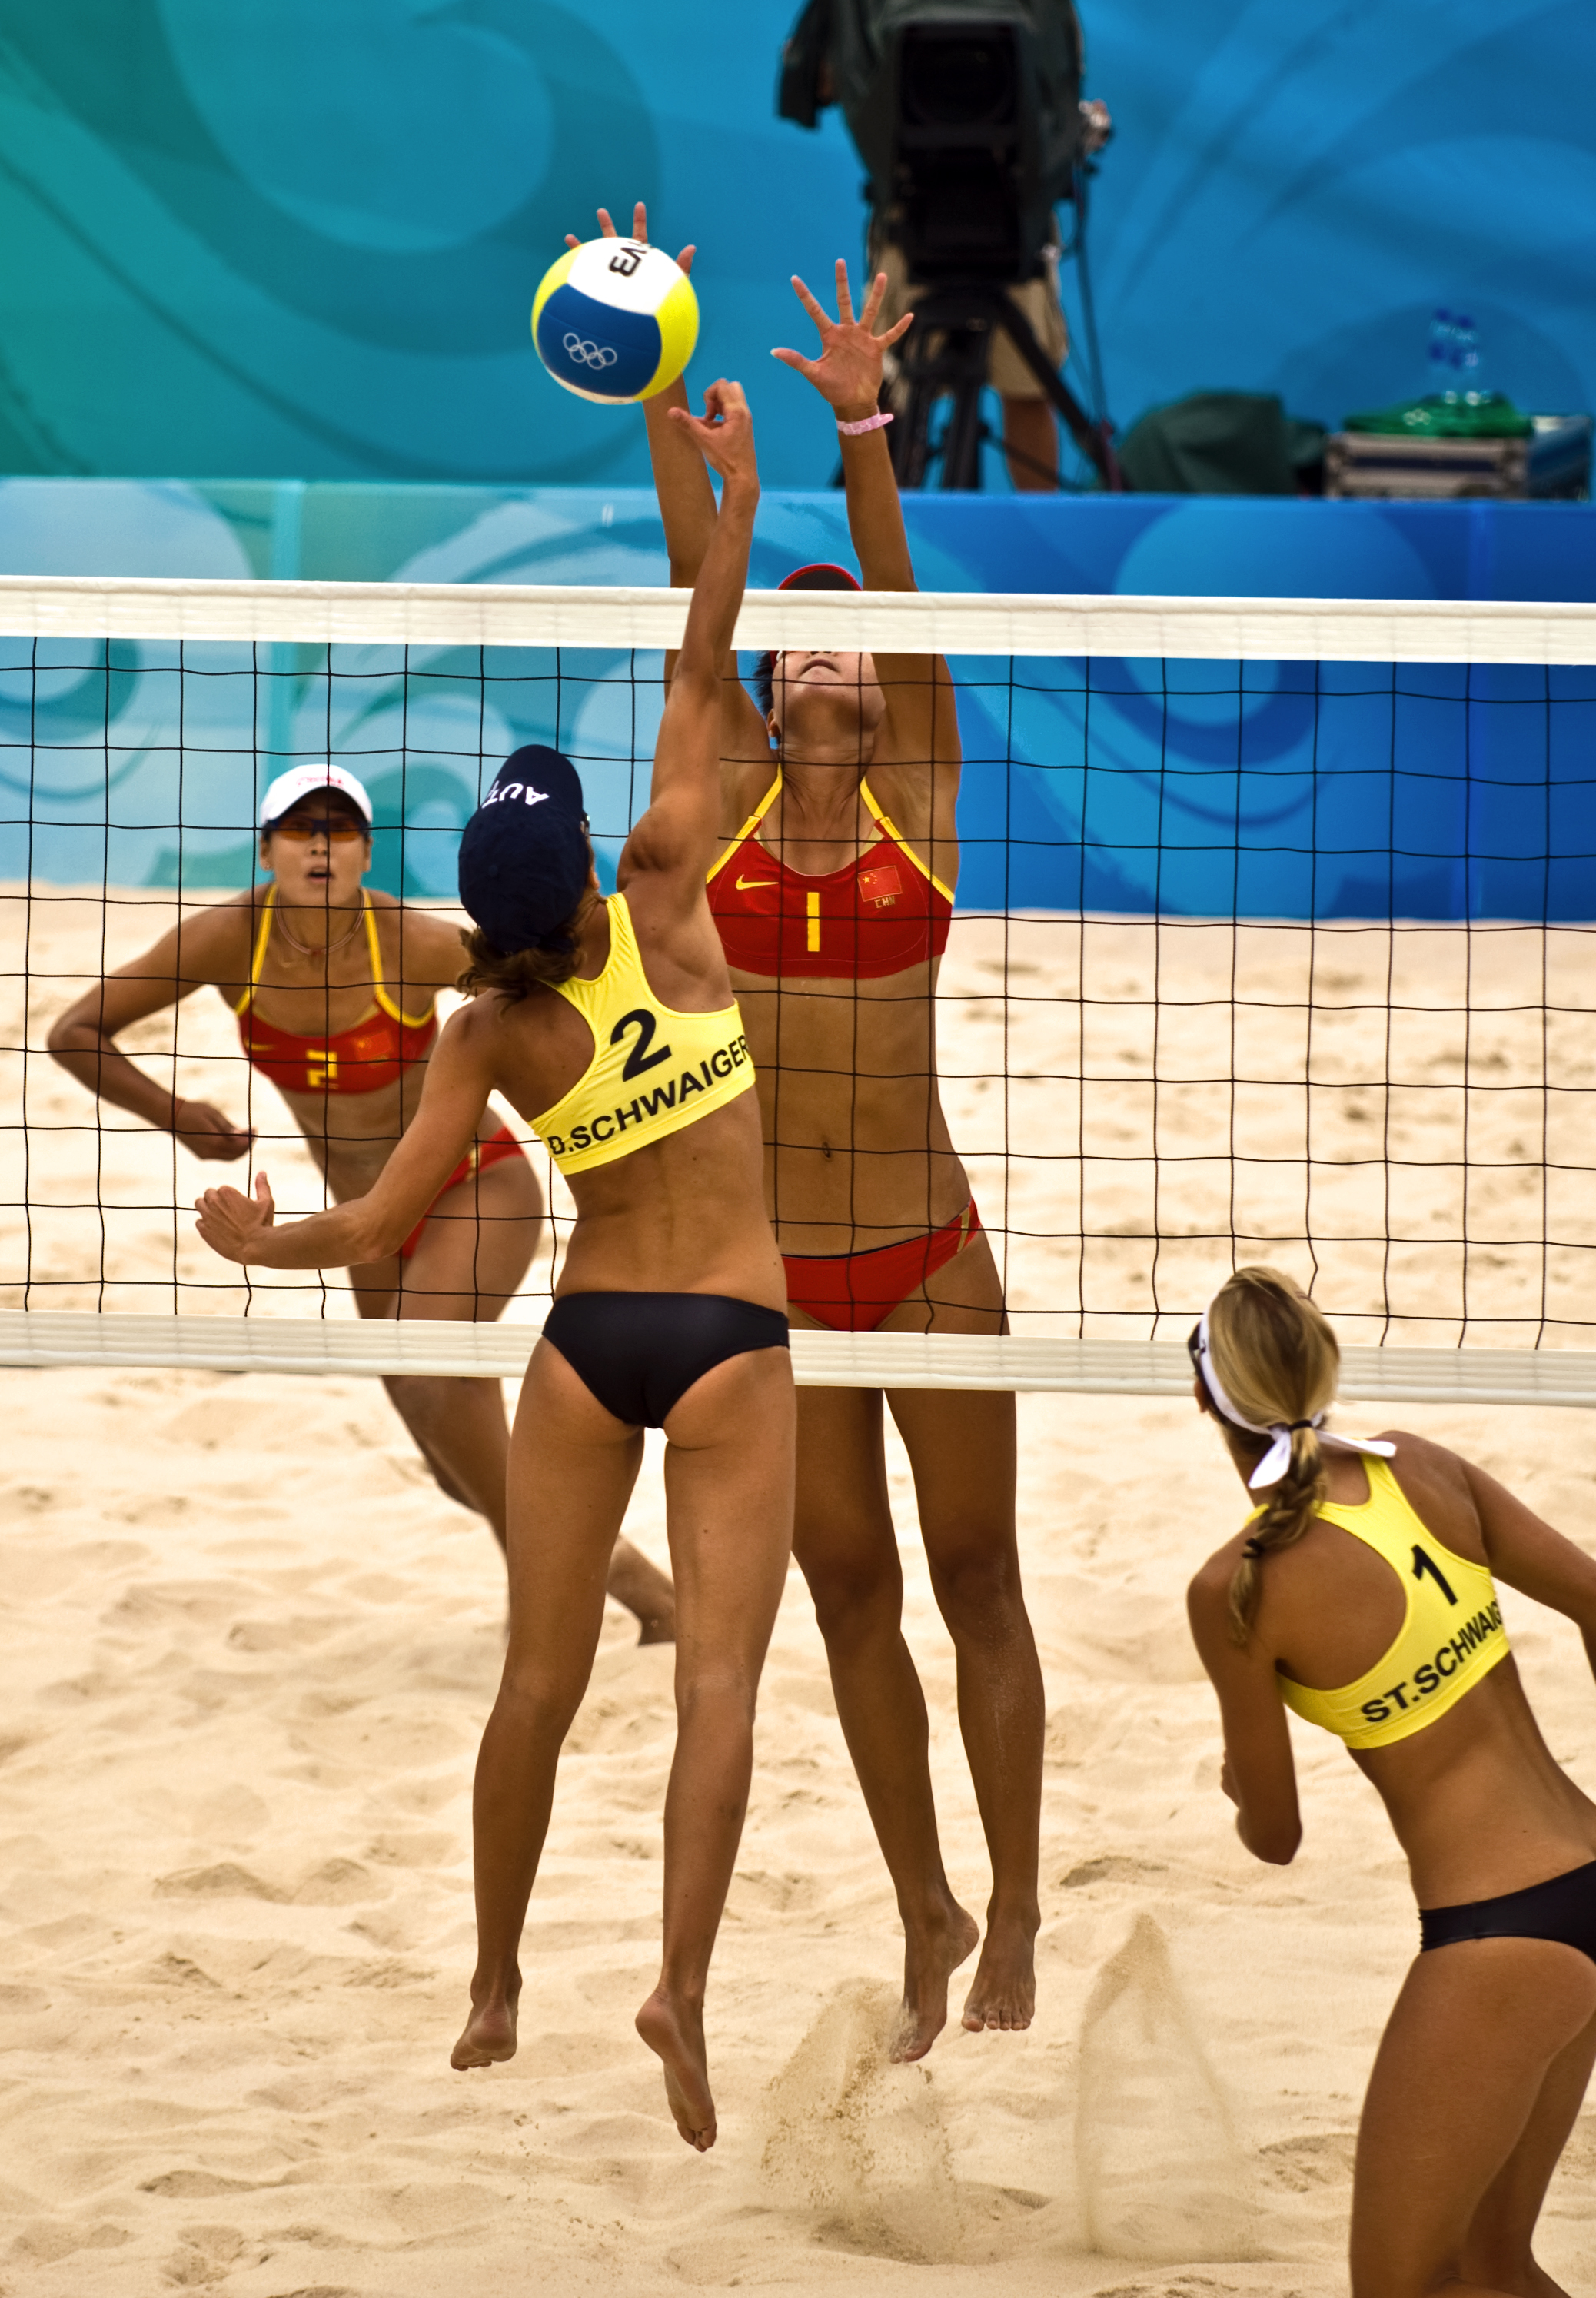 China vs. Austria in Beach Volleyball   Summer Olympics Beijing 2008 - История волейбола